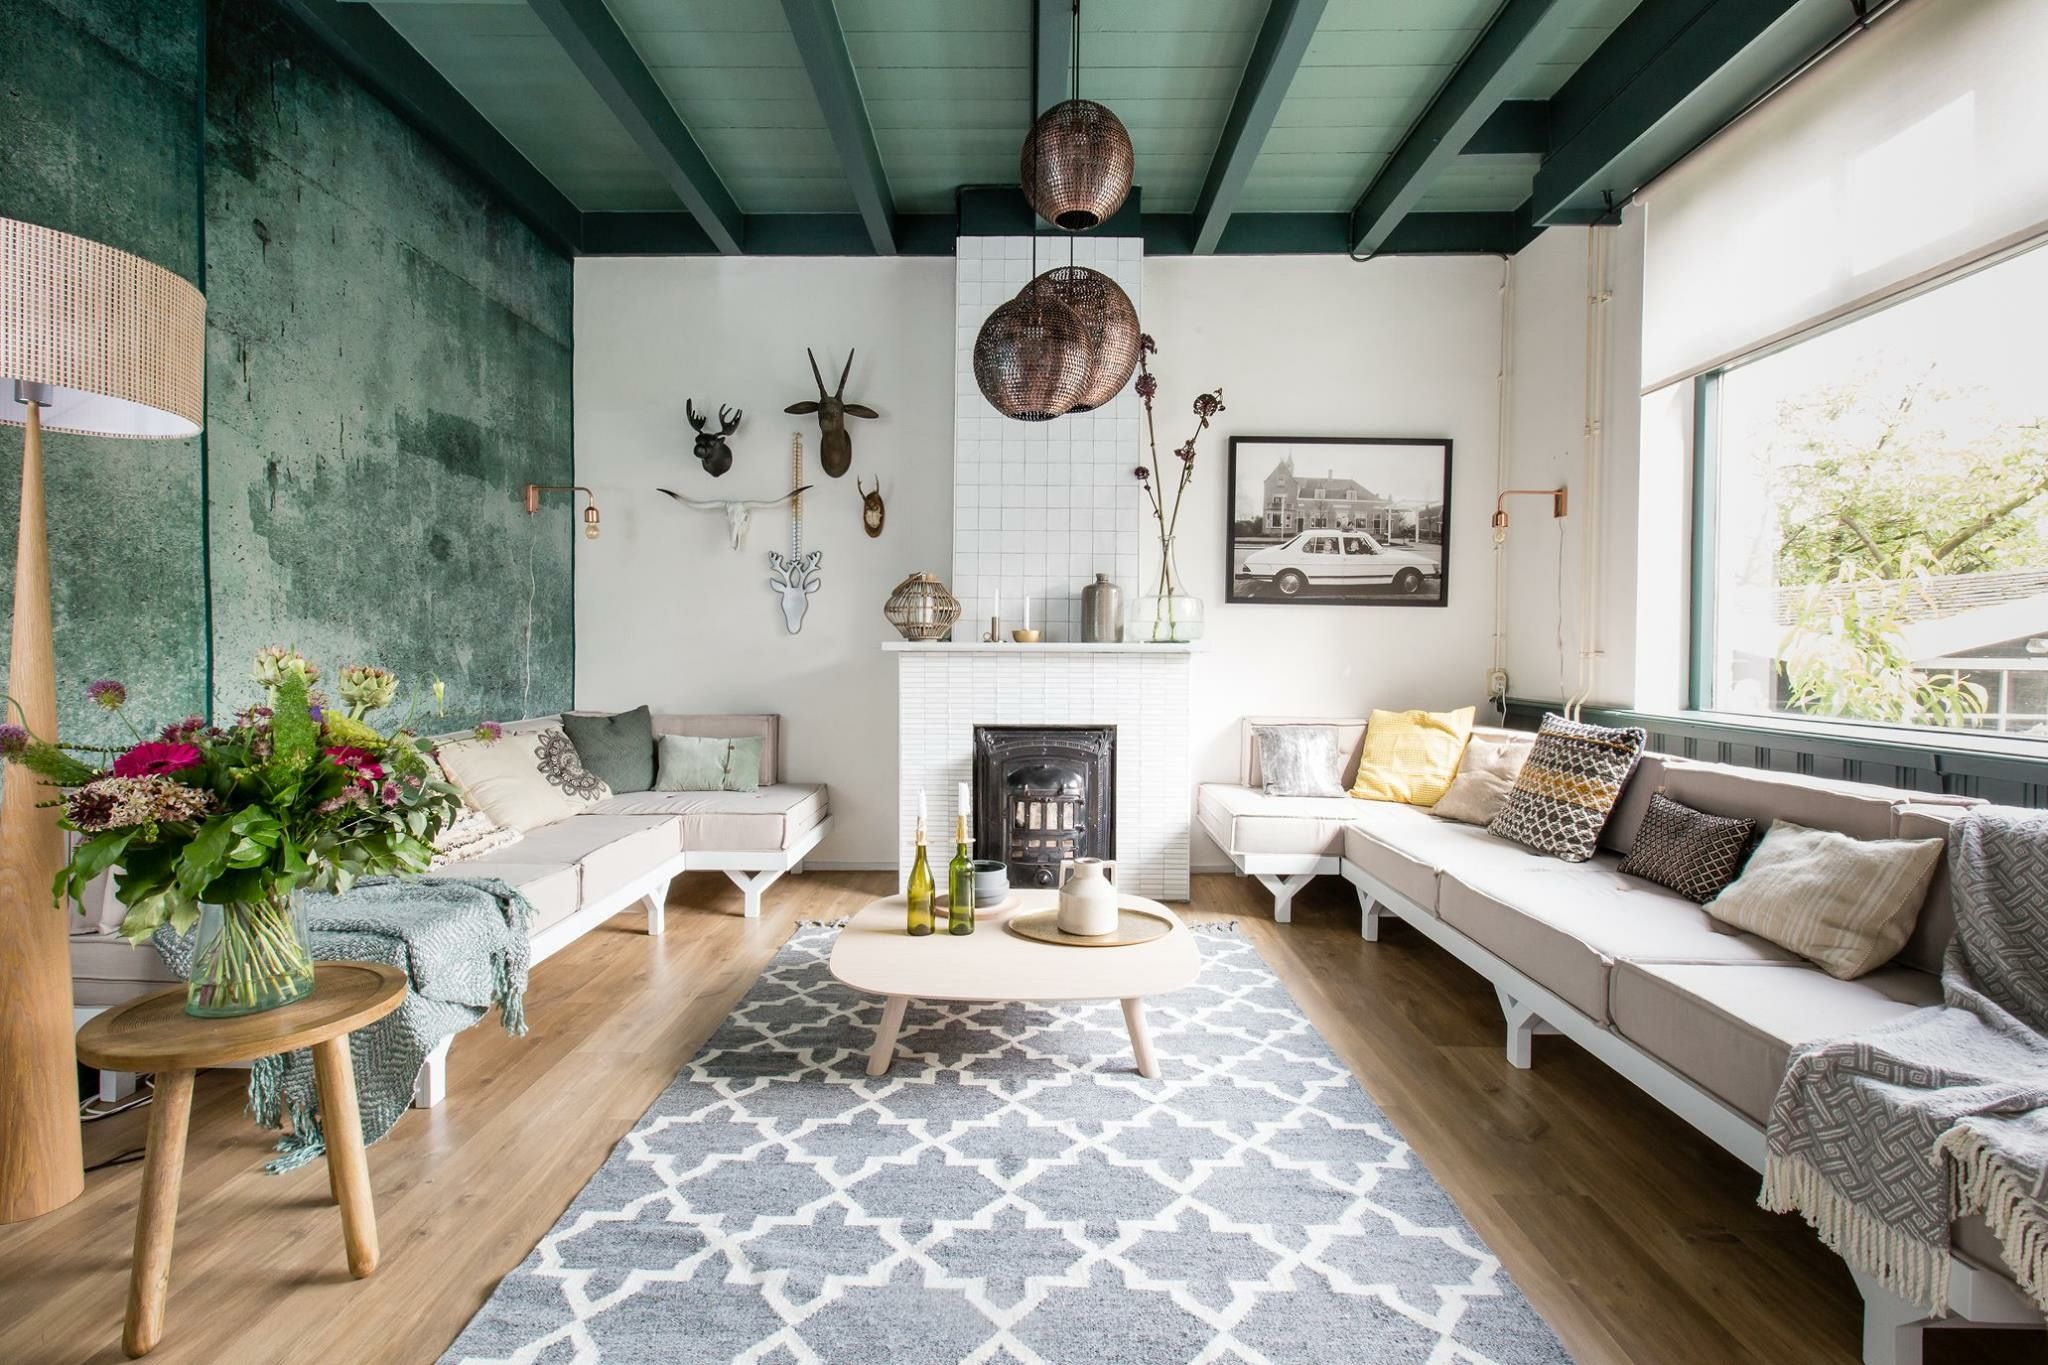 Interieur idee n interieur idee n pinterest for Interieur ideeen